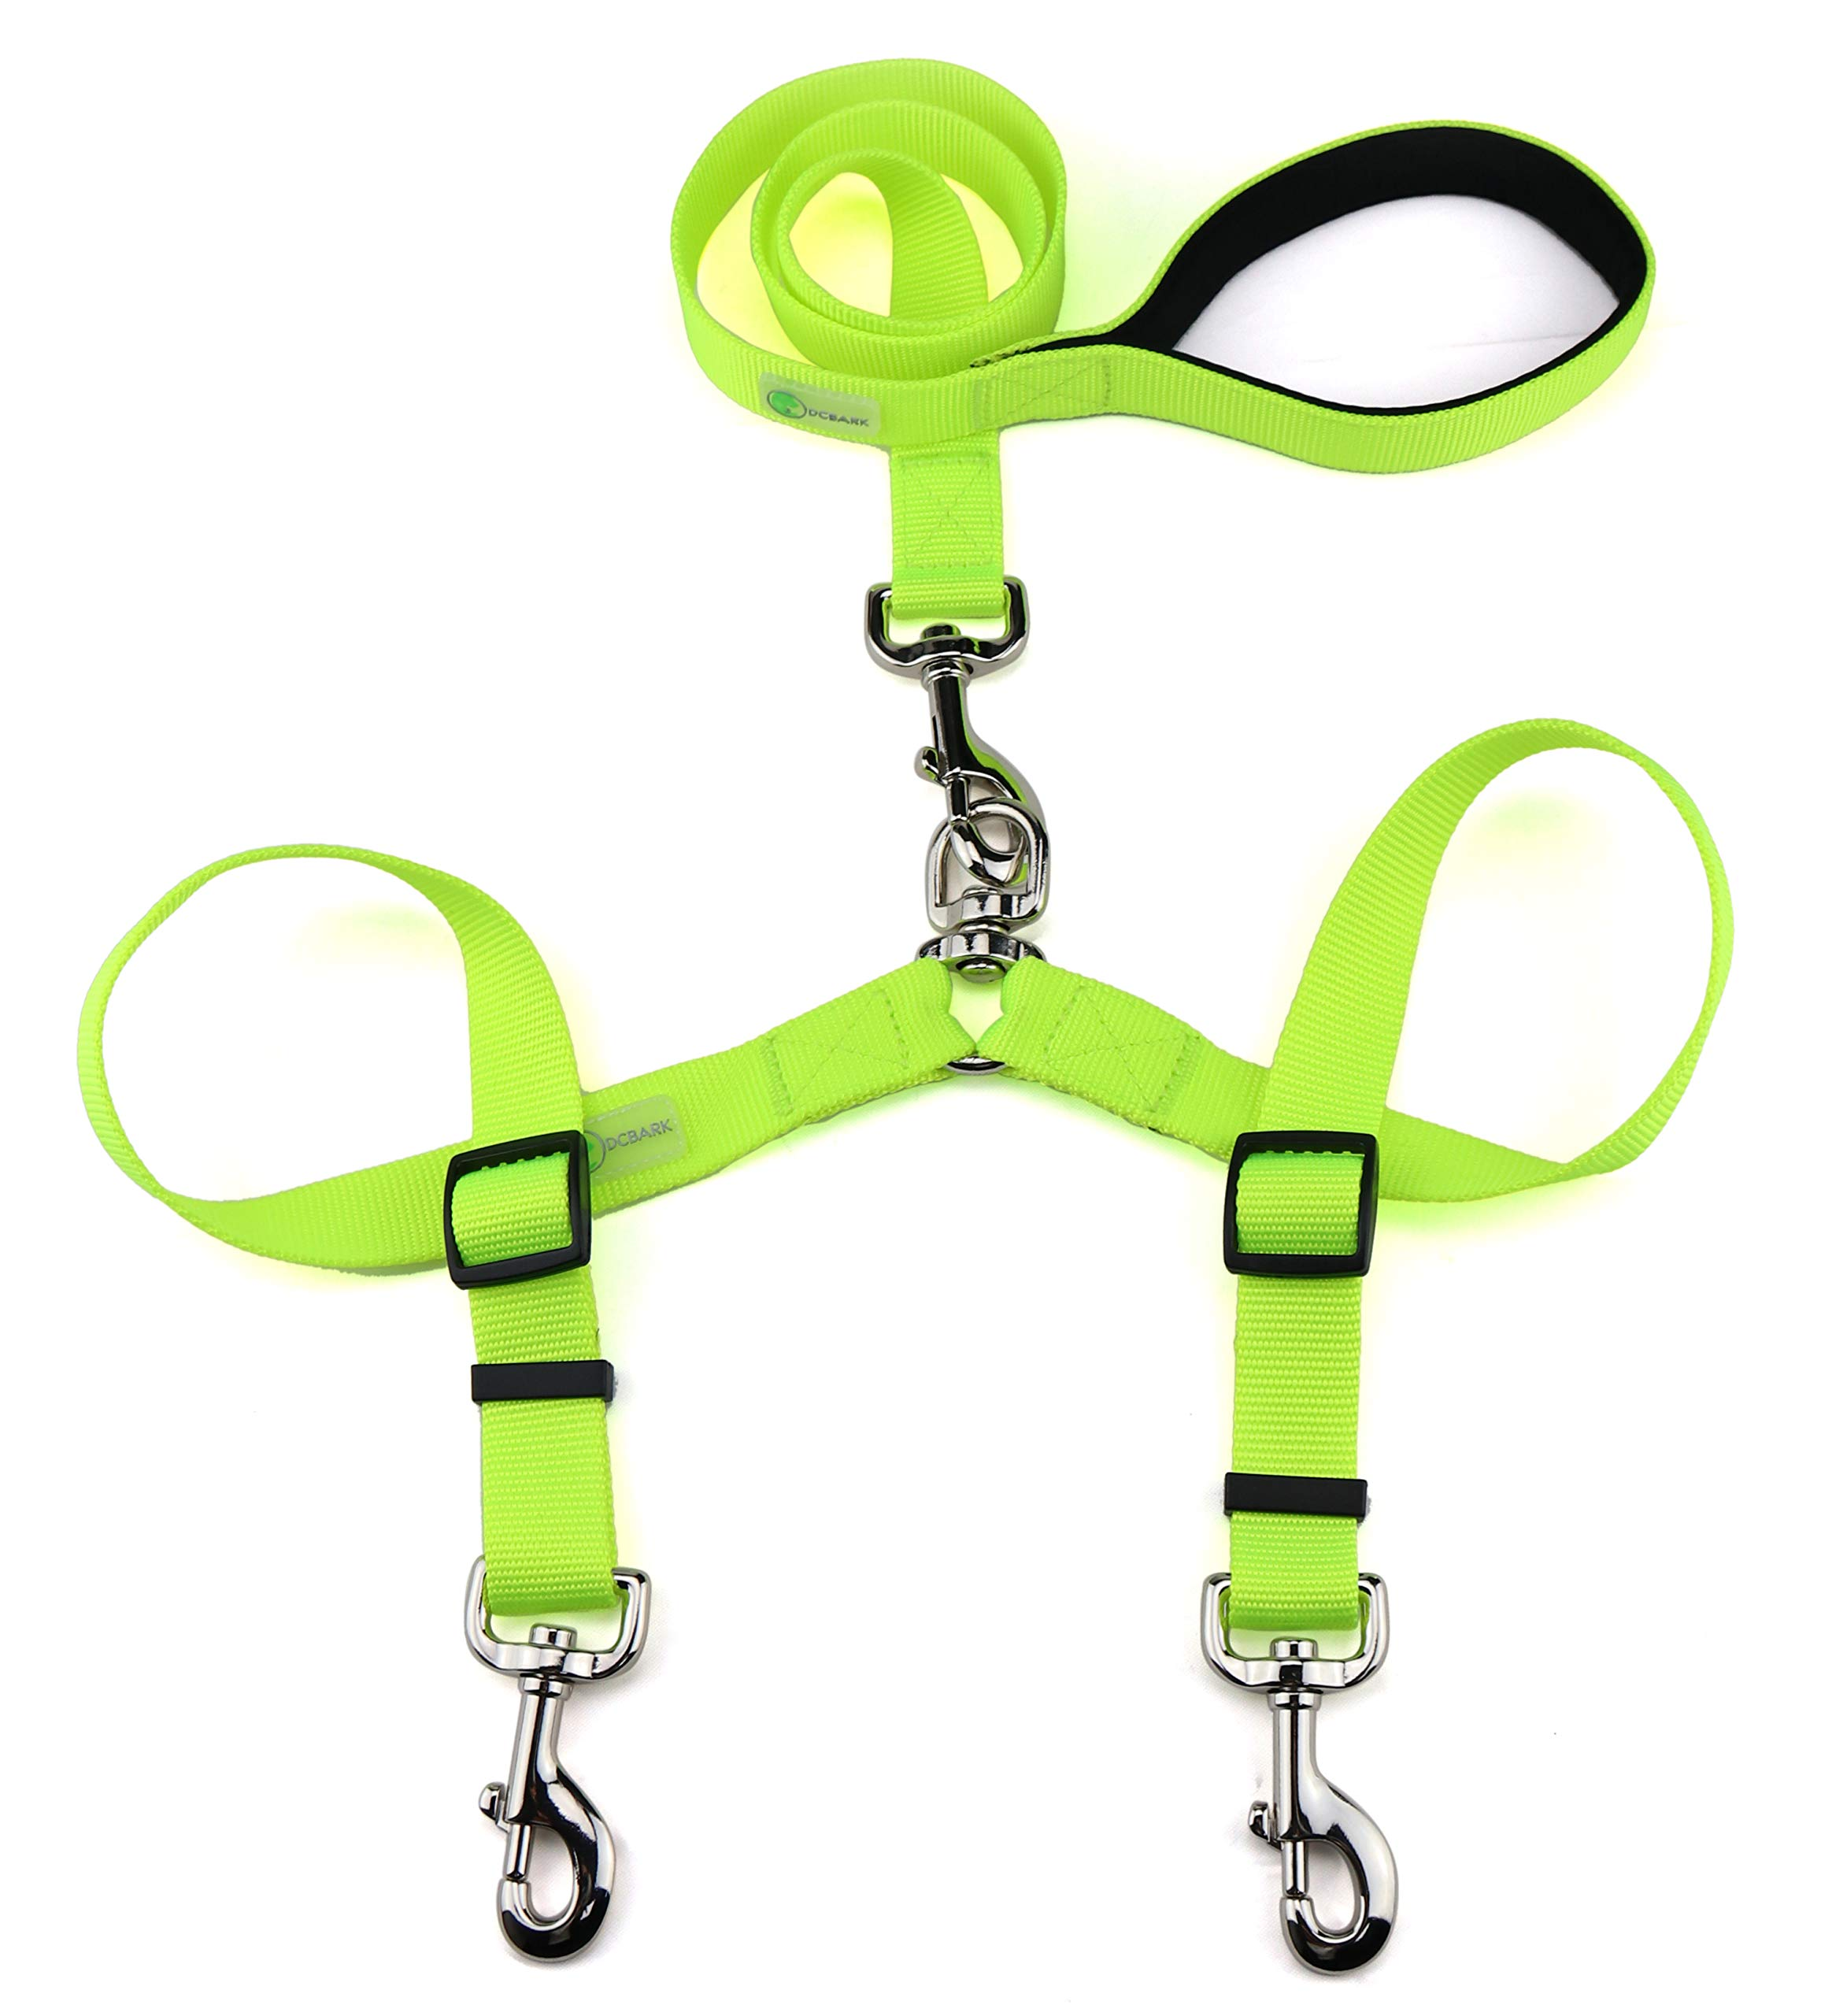 DCbark Tangle Free Double Dog Leash, No Tangle Adjustable Length Lead with Comfortable Padded Handle for 2 Dogs (L, Neo Green)